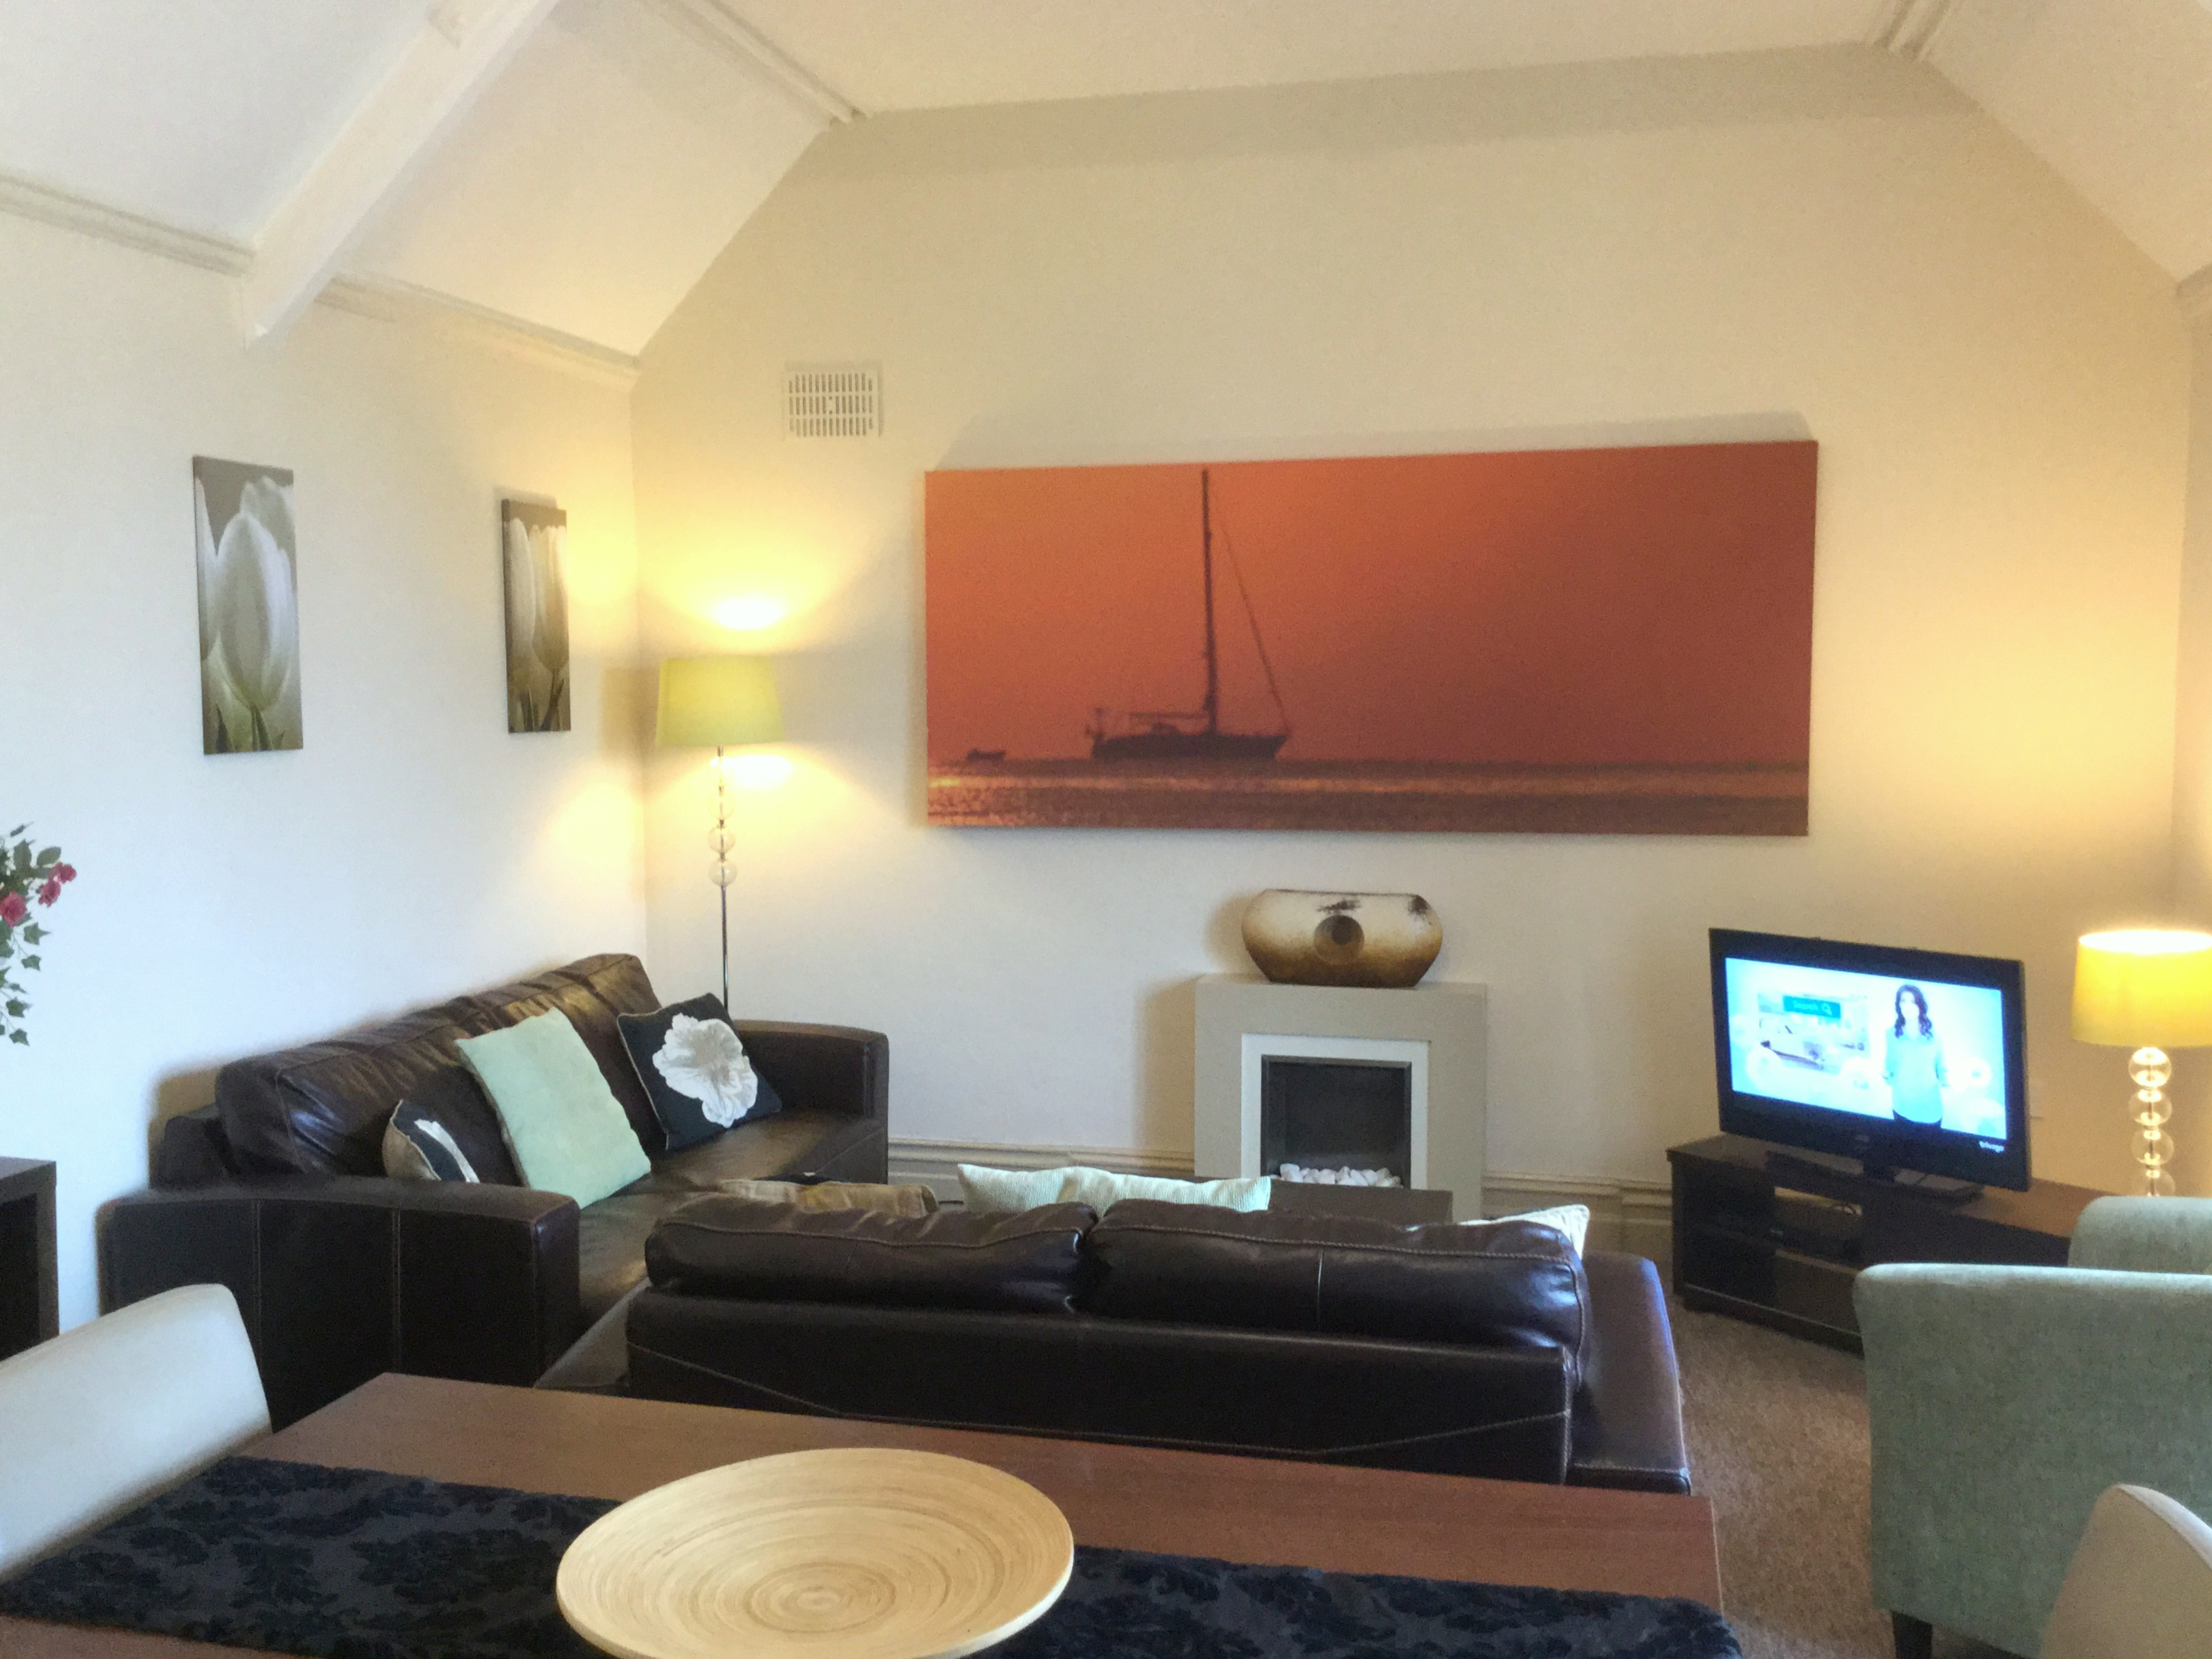 Apartment 2 Bedford House - large two bedroom self catering apartment in Torquay